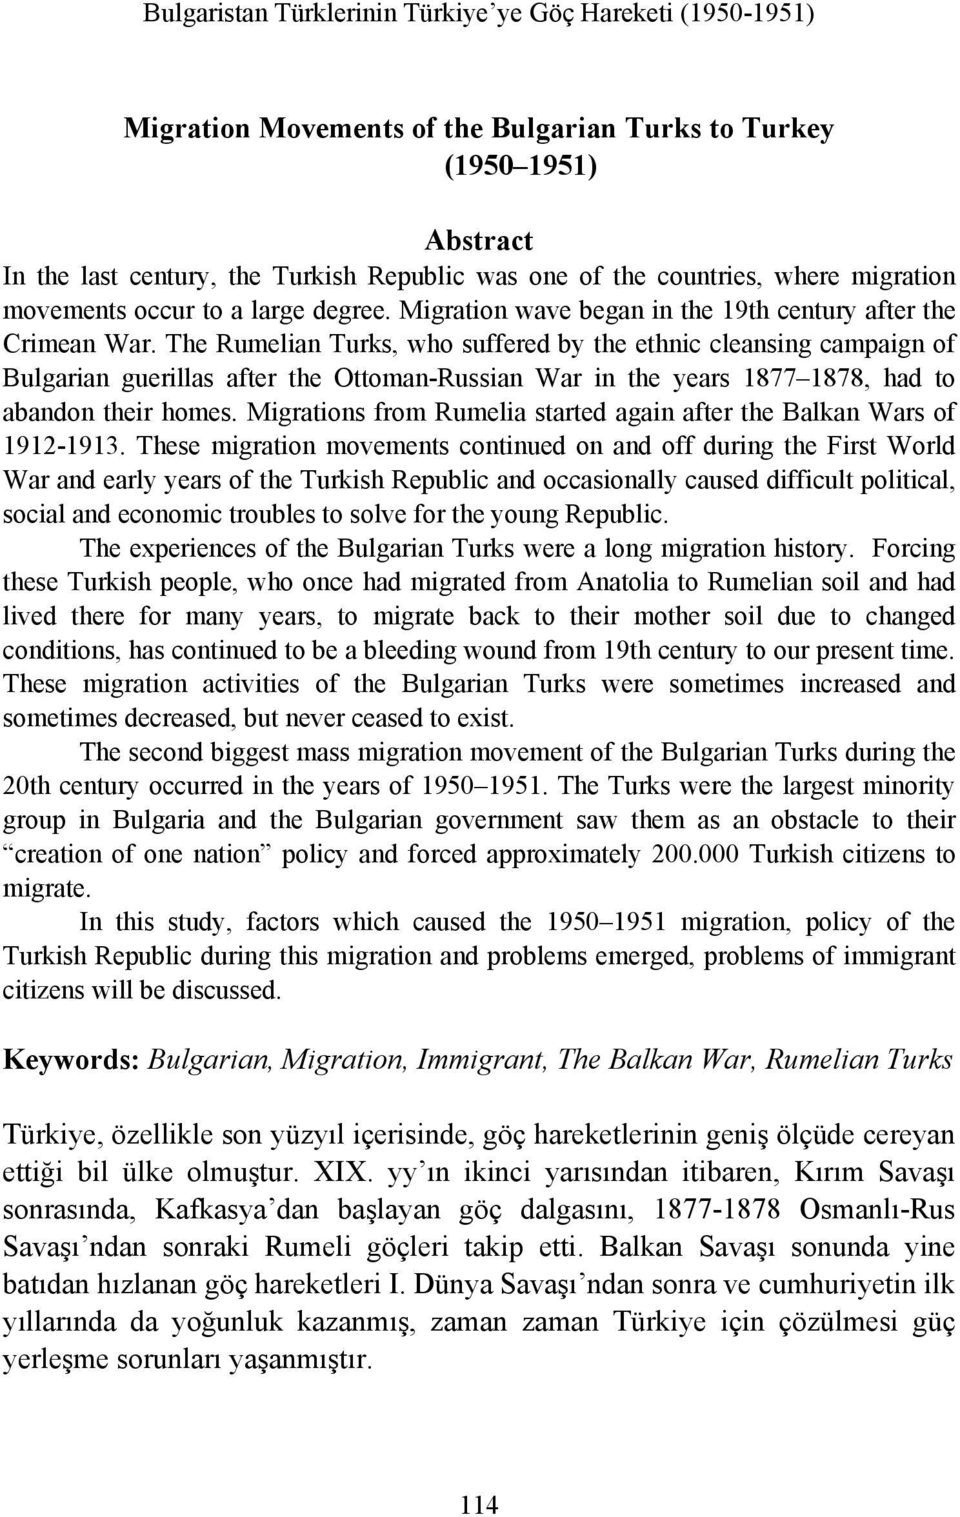 The Rumelian Turks, who suffered by the ethnic cleansing campaign of Bulgarian guerillas after the Ottoman-Russian War in the years 1877 1878, had to abandon their homes.